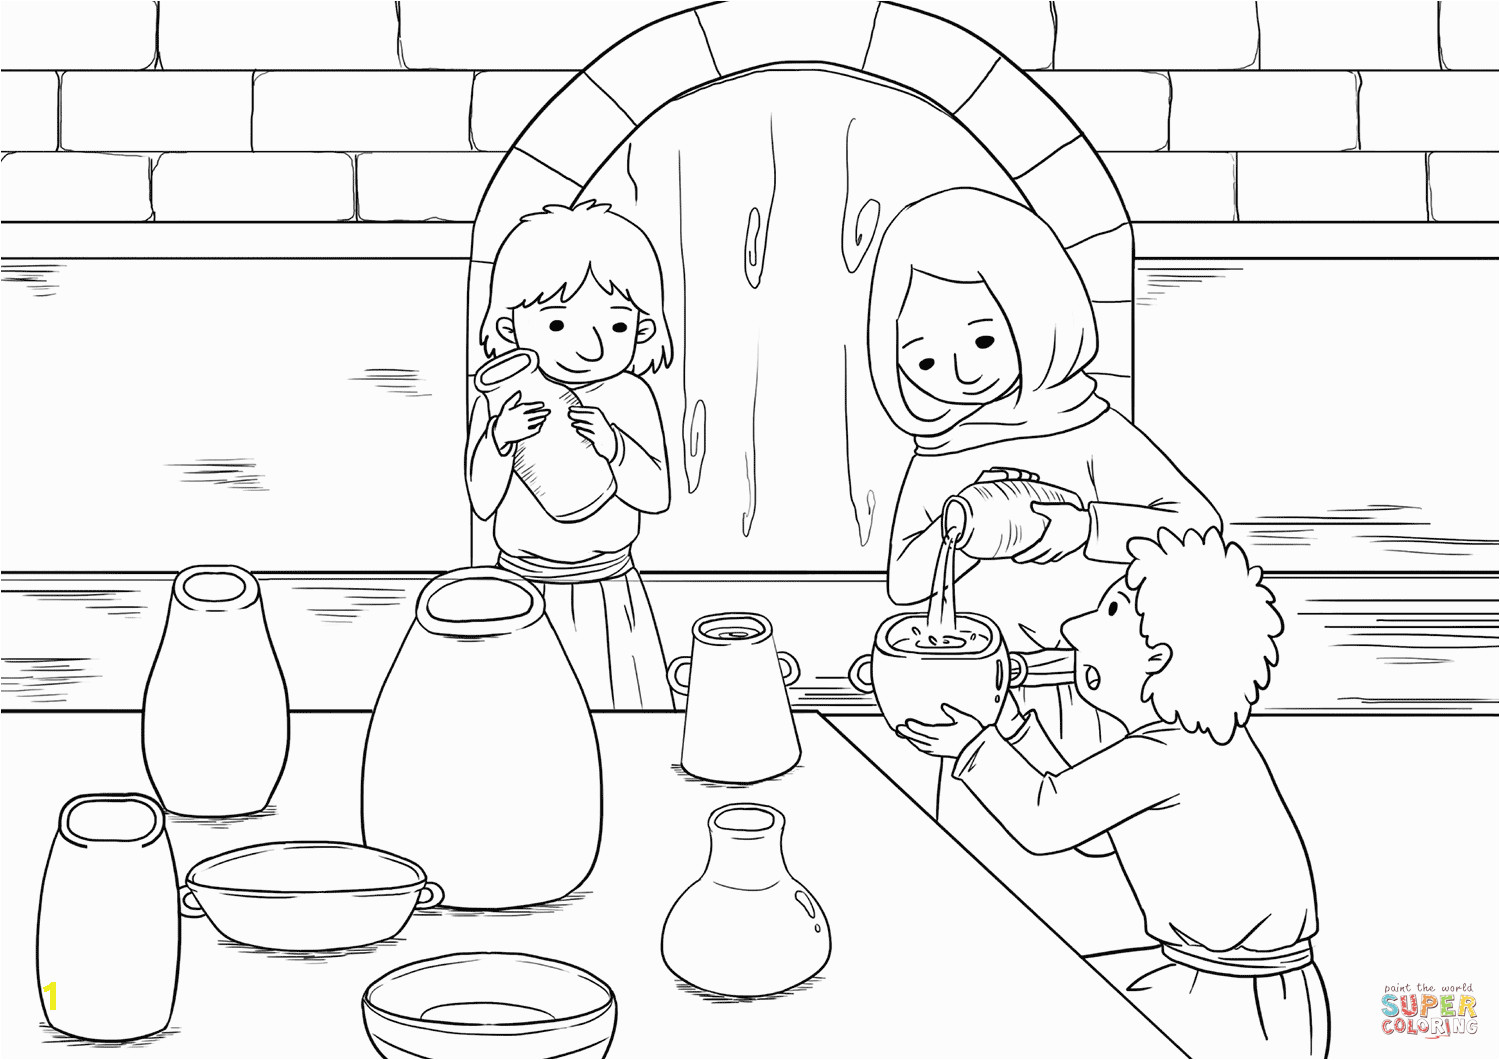 the widow and her sons pour oil into all the jars